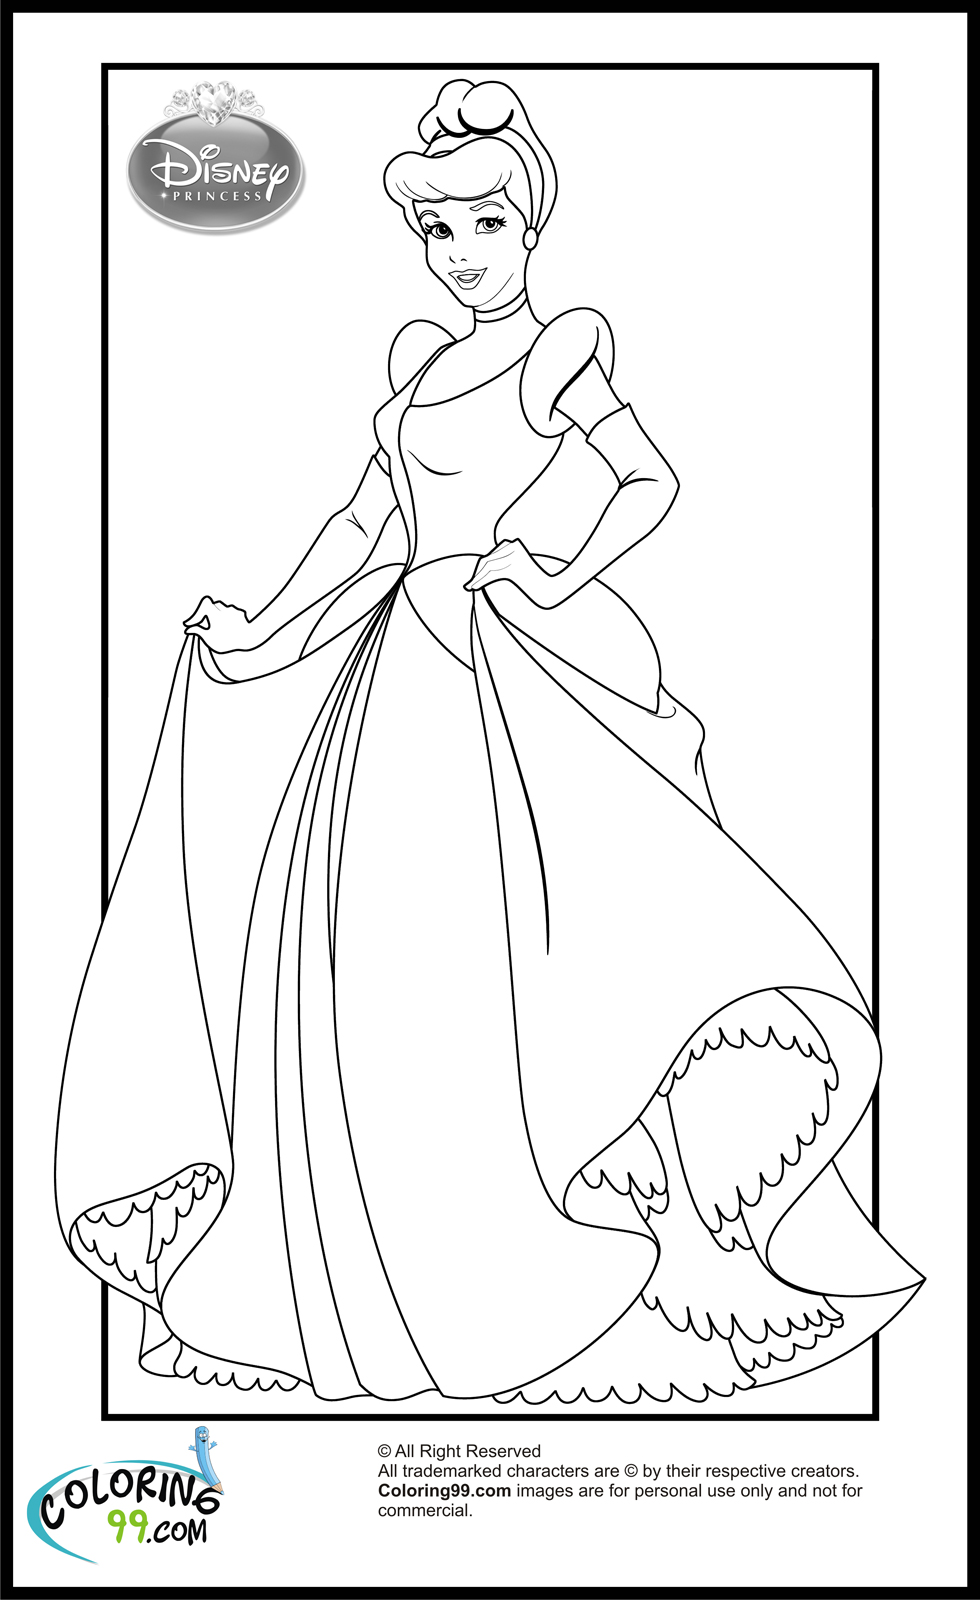 Disney Princesses 10 Coloring Page Central Sketch Coloring ... | all disney princess coloring pages printable